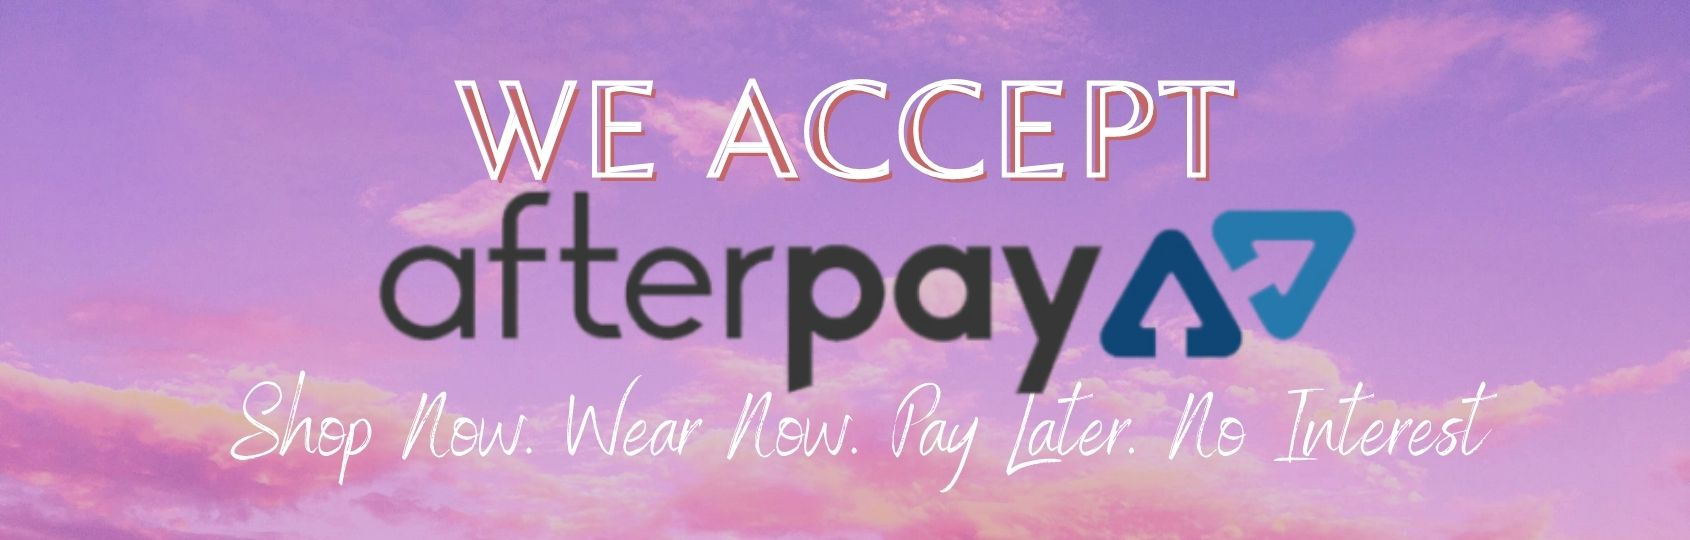 Clozila accept-afterpay-interest-shop now